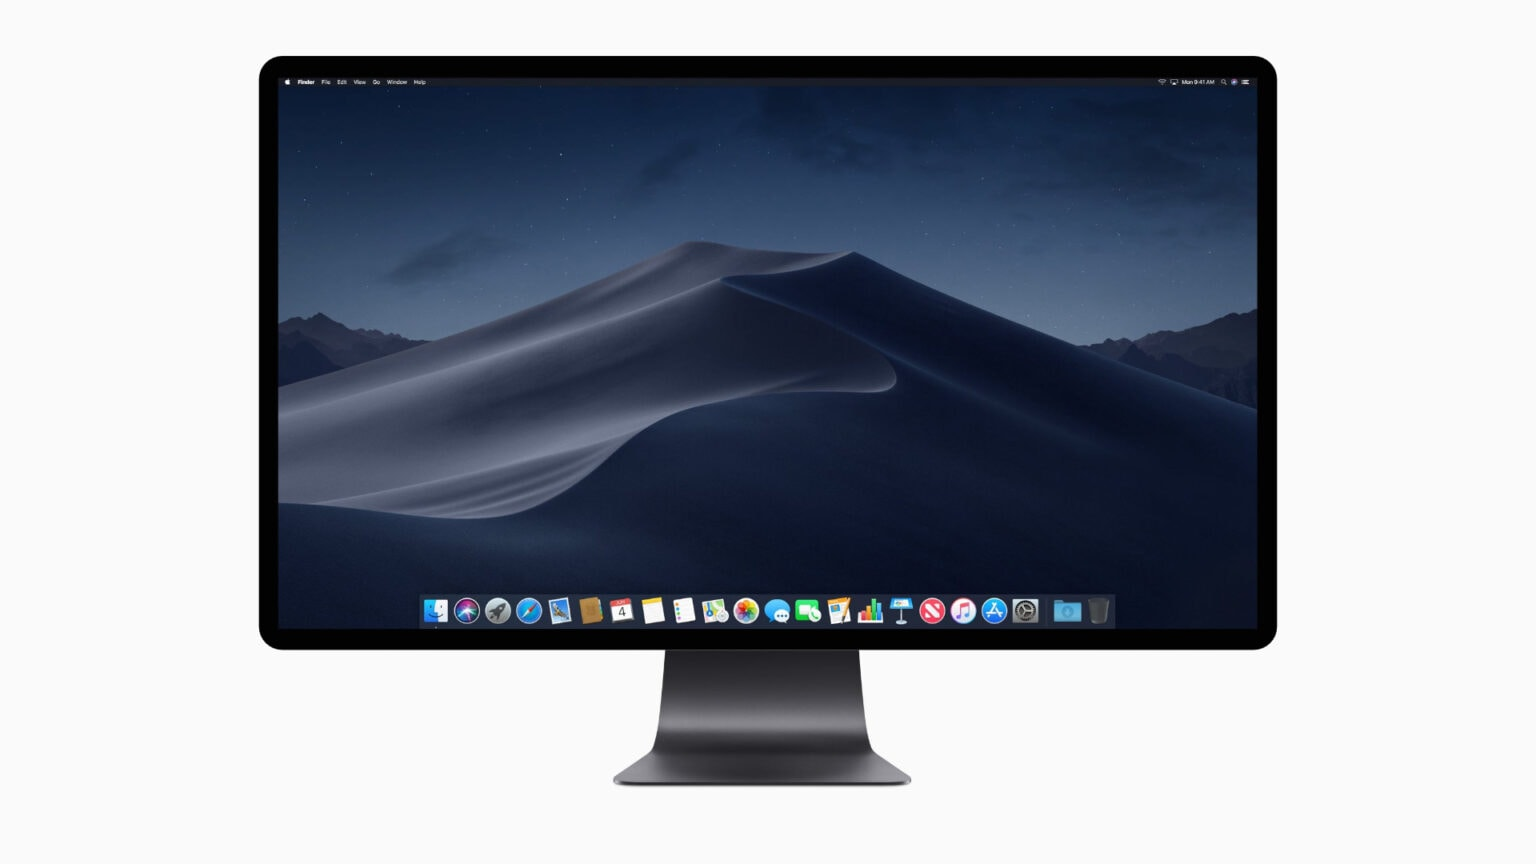 iMac concept inspired by iPad Pro.